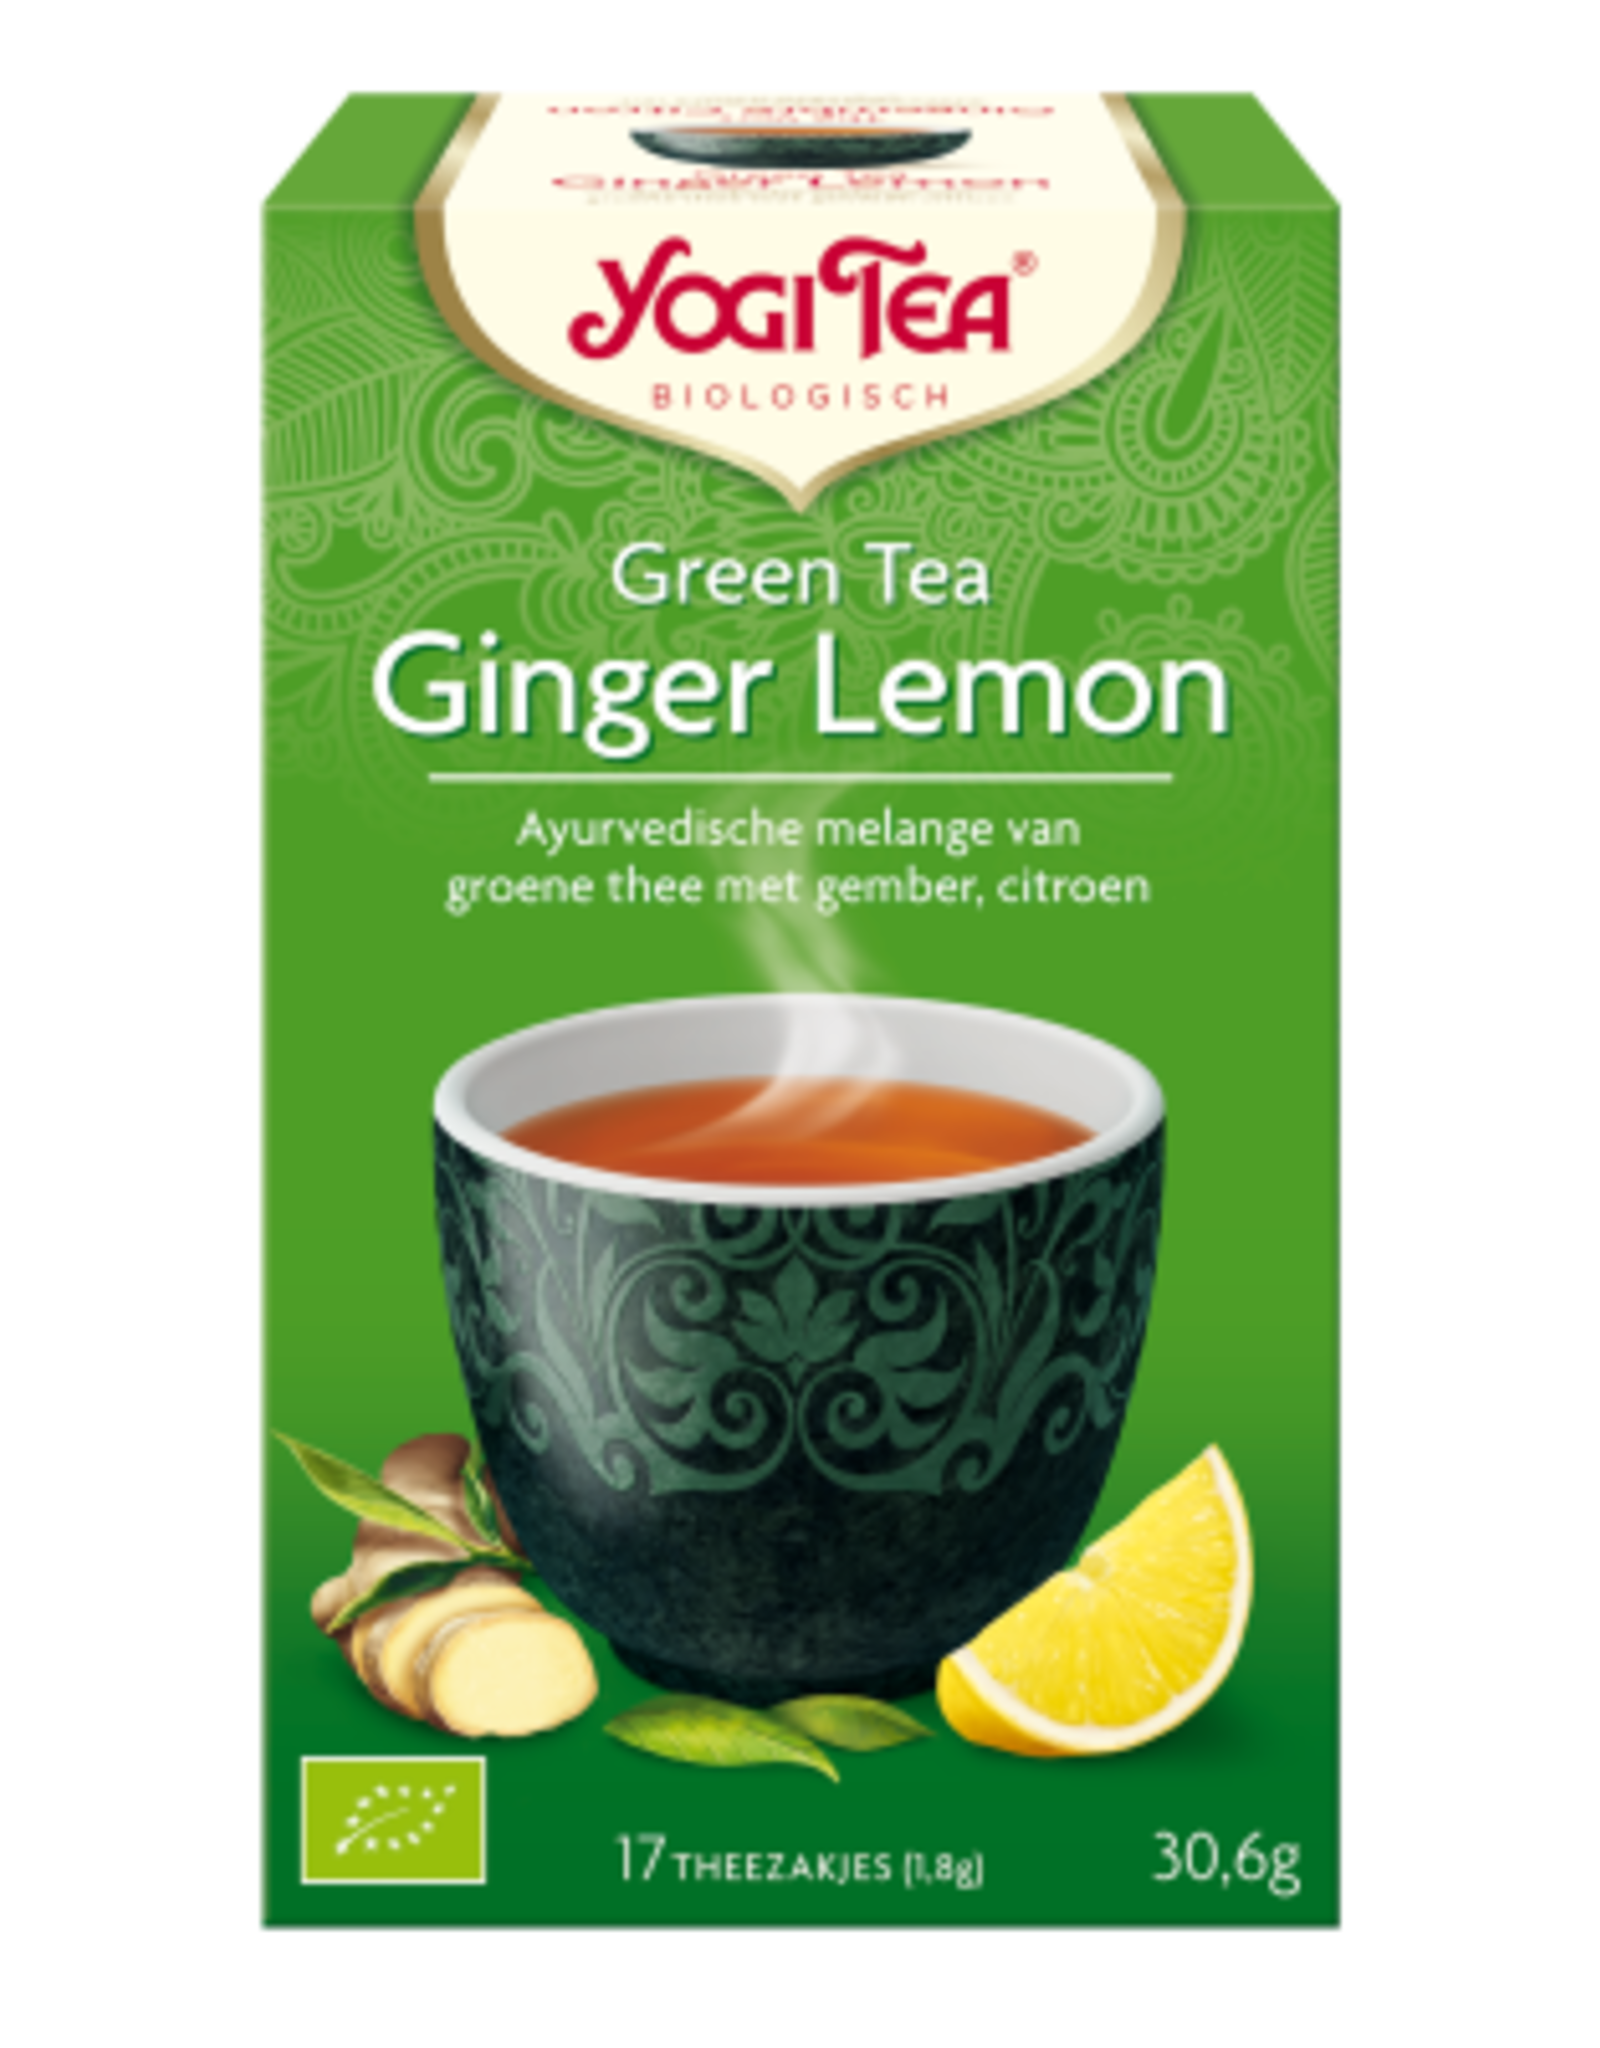 Yogi Tea Yogi Tea Green Tea Ginger Lemon